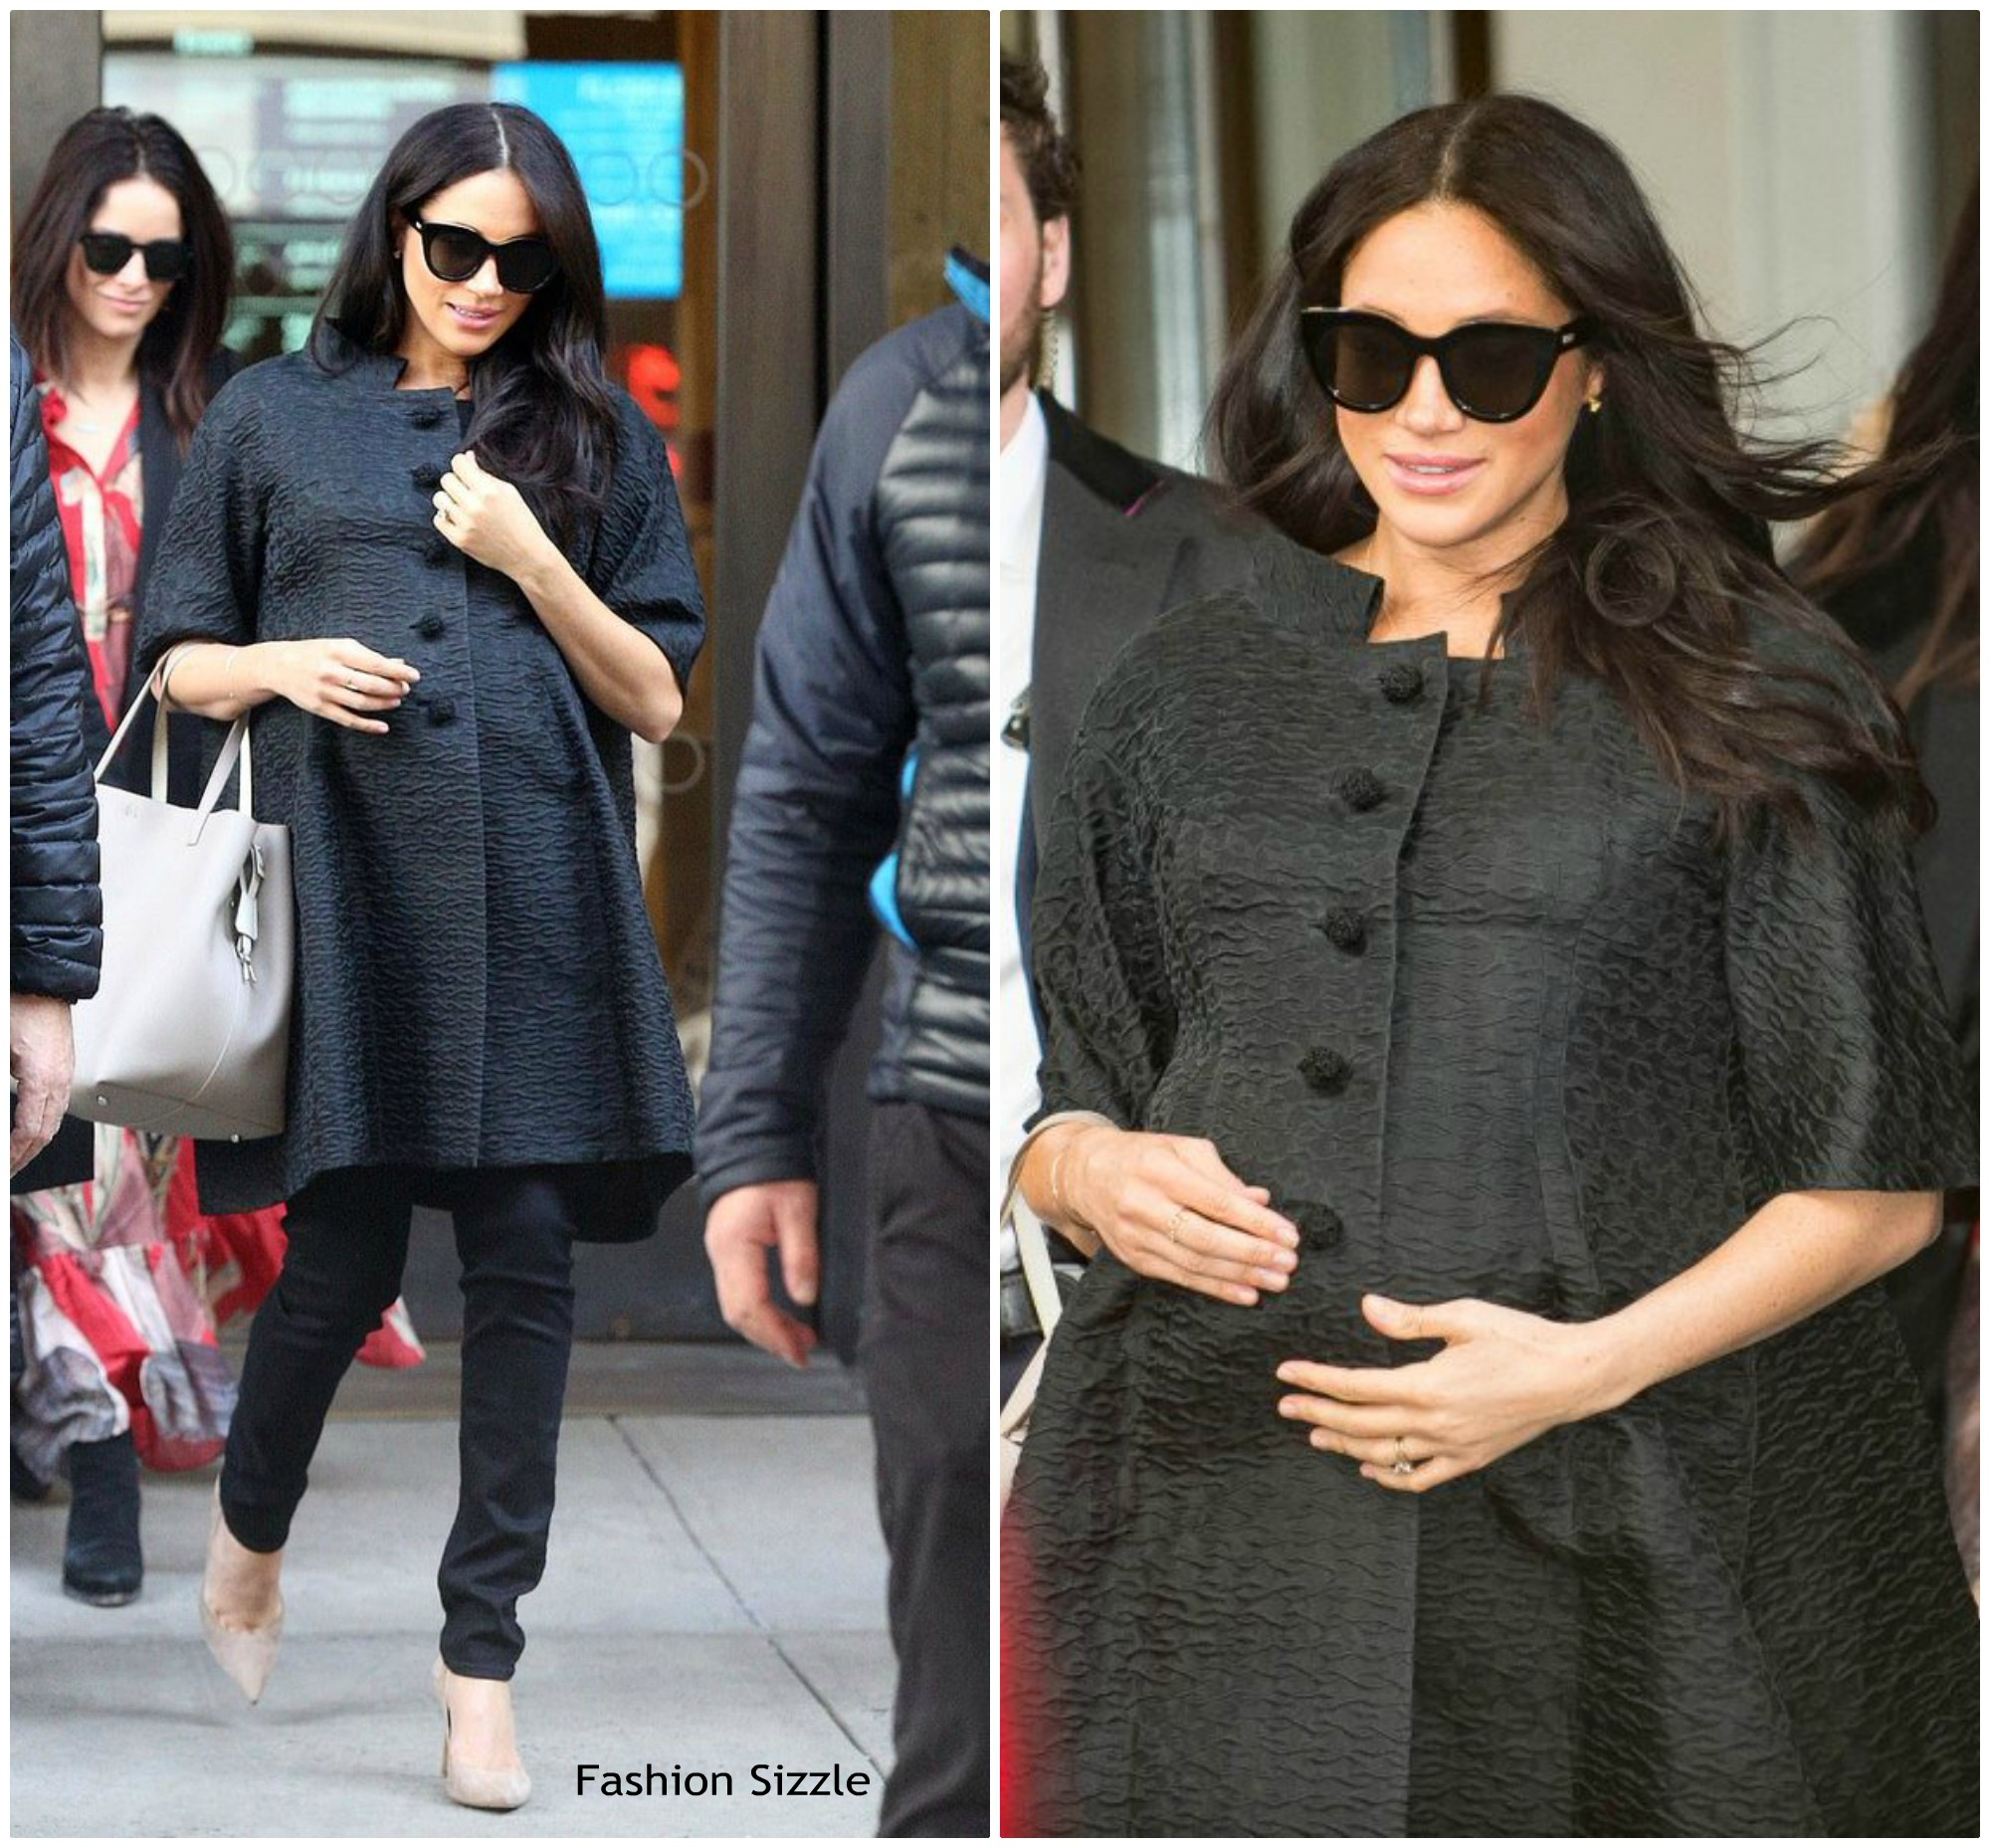 meghan-duchess-of-sussex-in-courreges-haute-couture-out-in-new-york